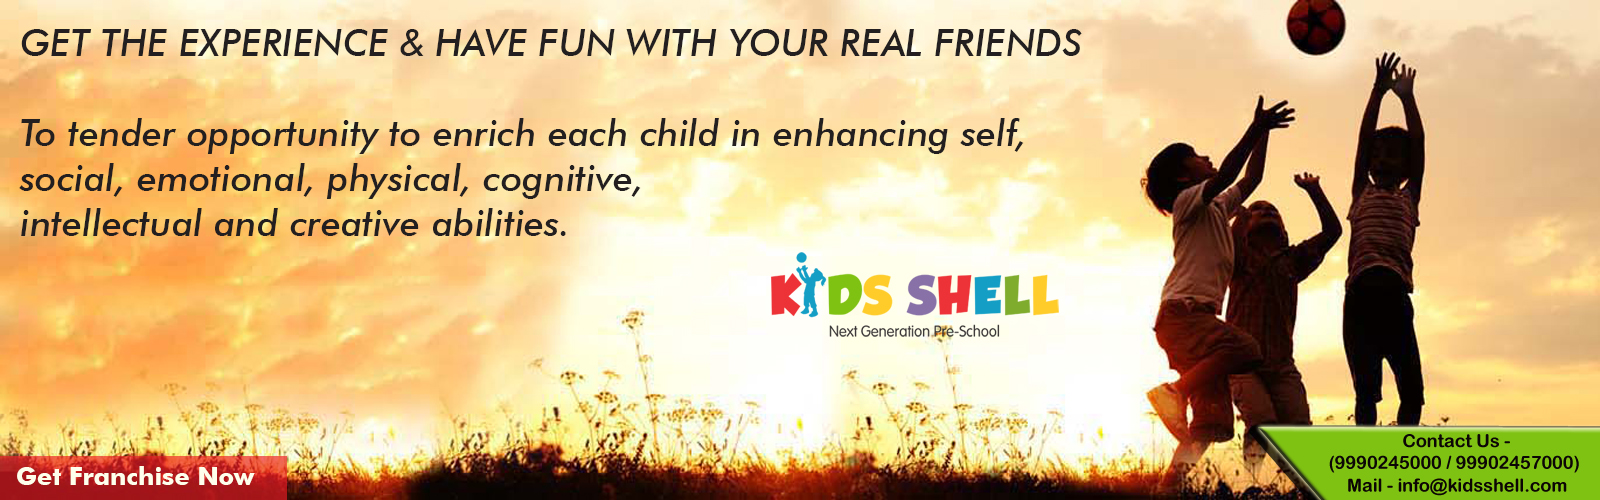 admin/photos/Kids Shell Pre School